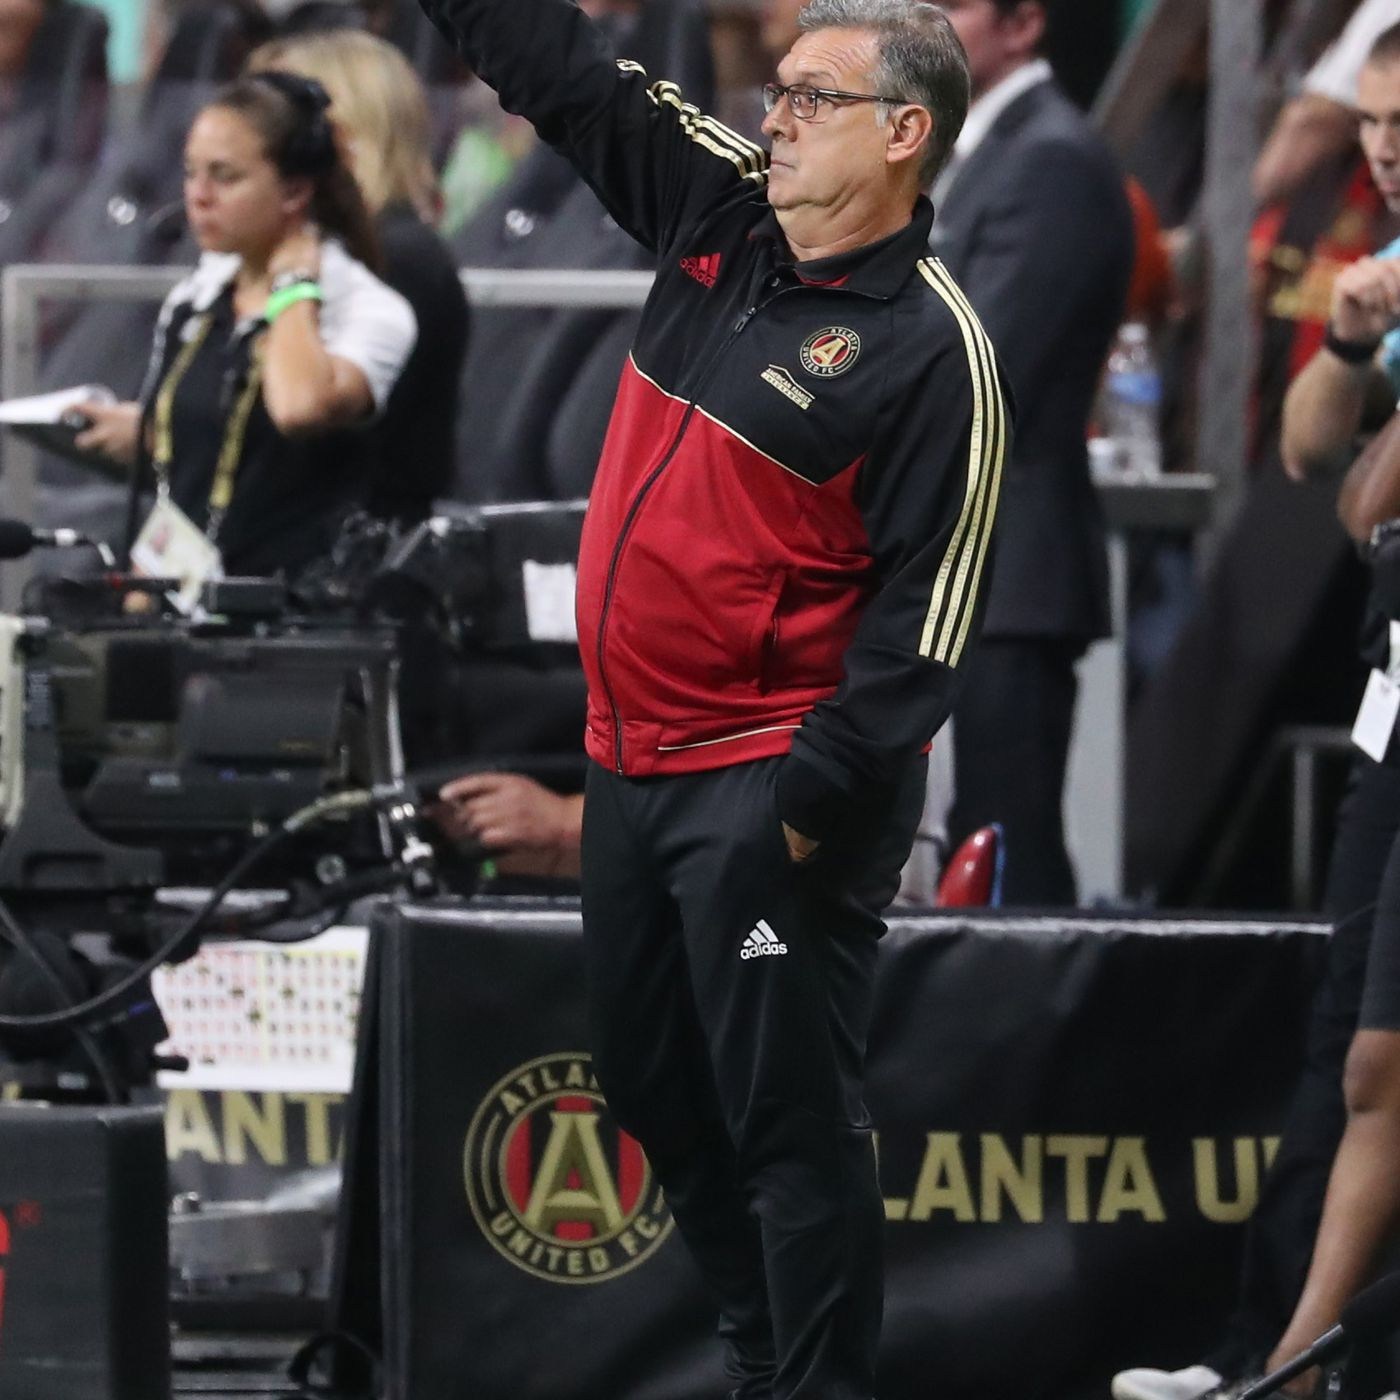 d293385f0 Major Link Soccer  Will both Mexico s and the US  coach come from MLS  -  Sounder At Heart